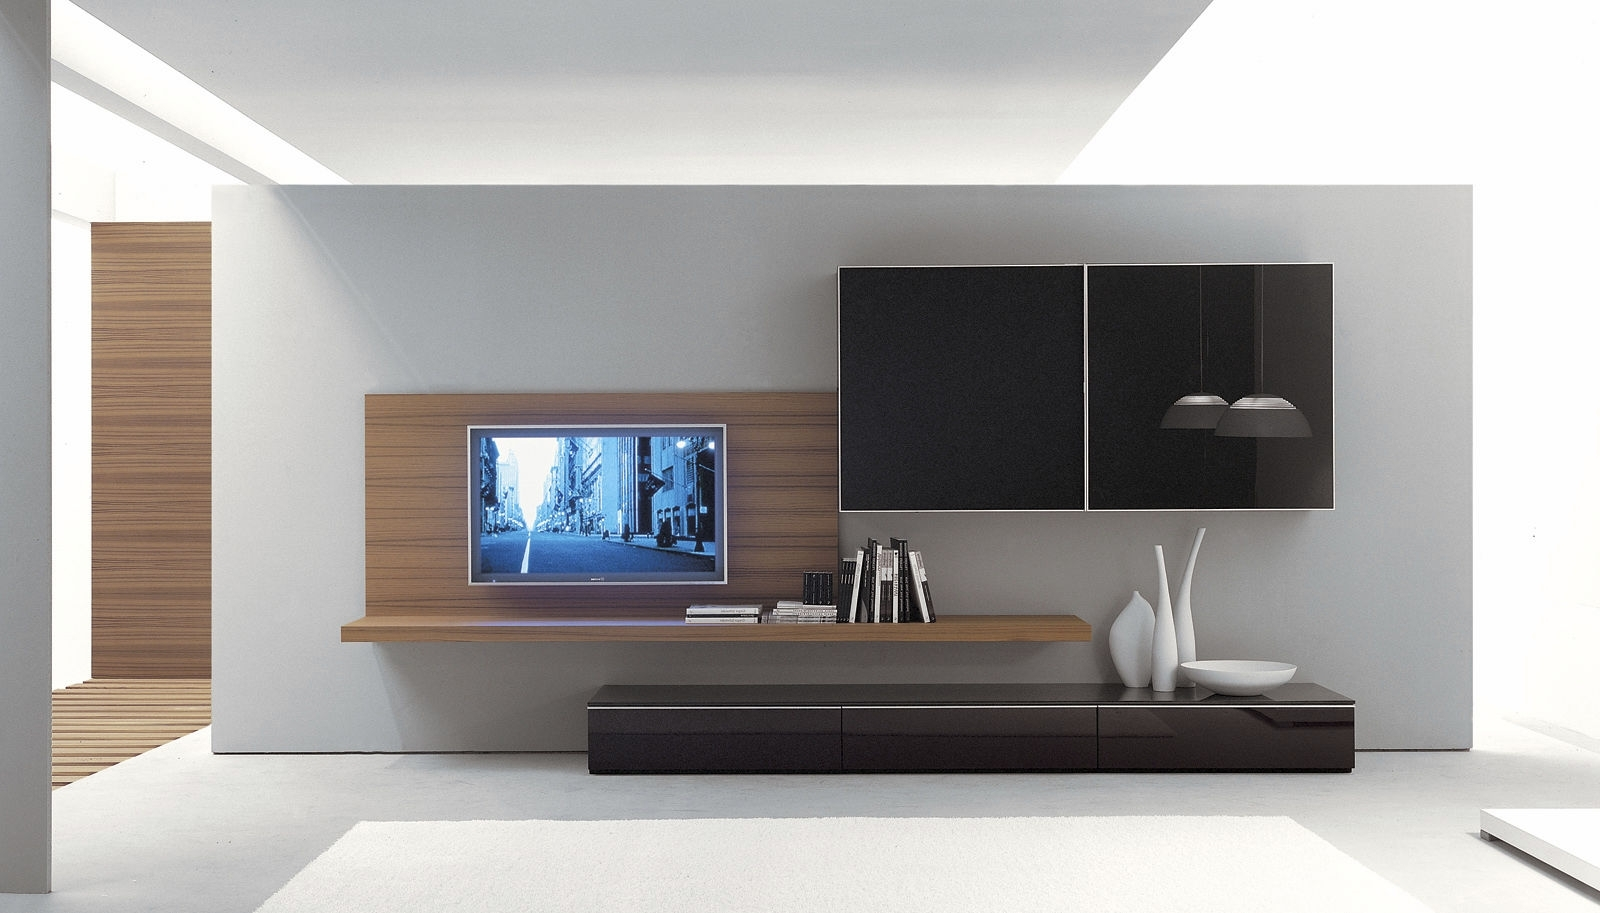 Well Known Contemporary Wall Units For Tv – Wall Units Design Ideas Within Modern Tv Wall Units (View 12 of 15)